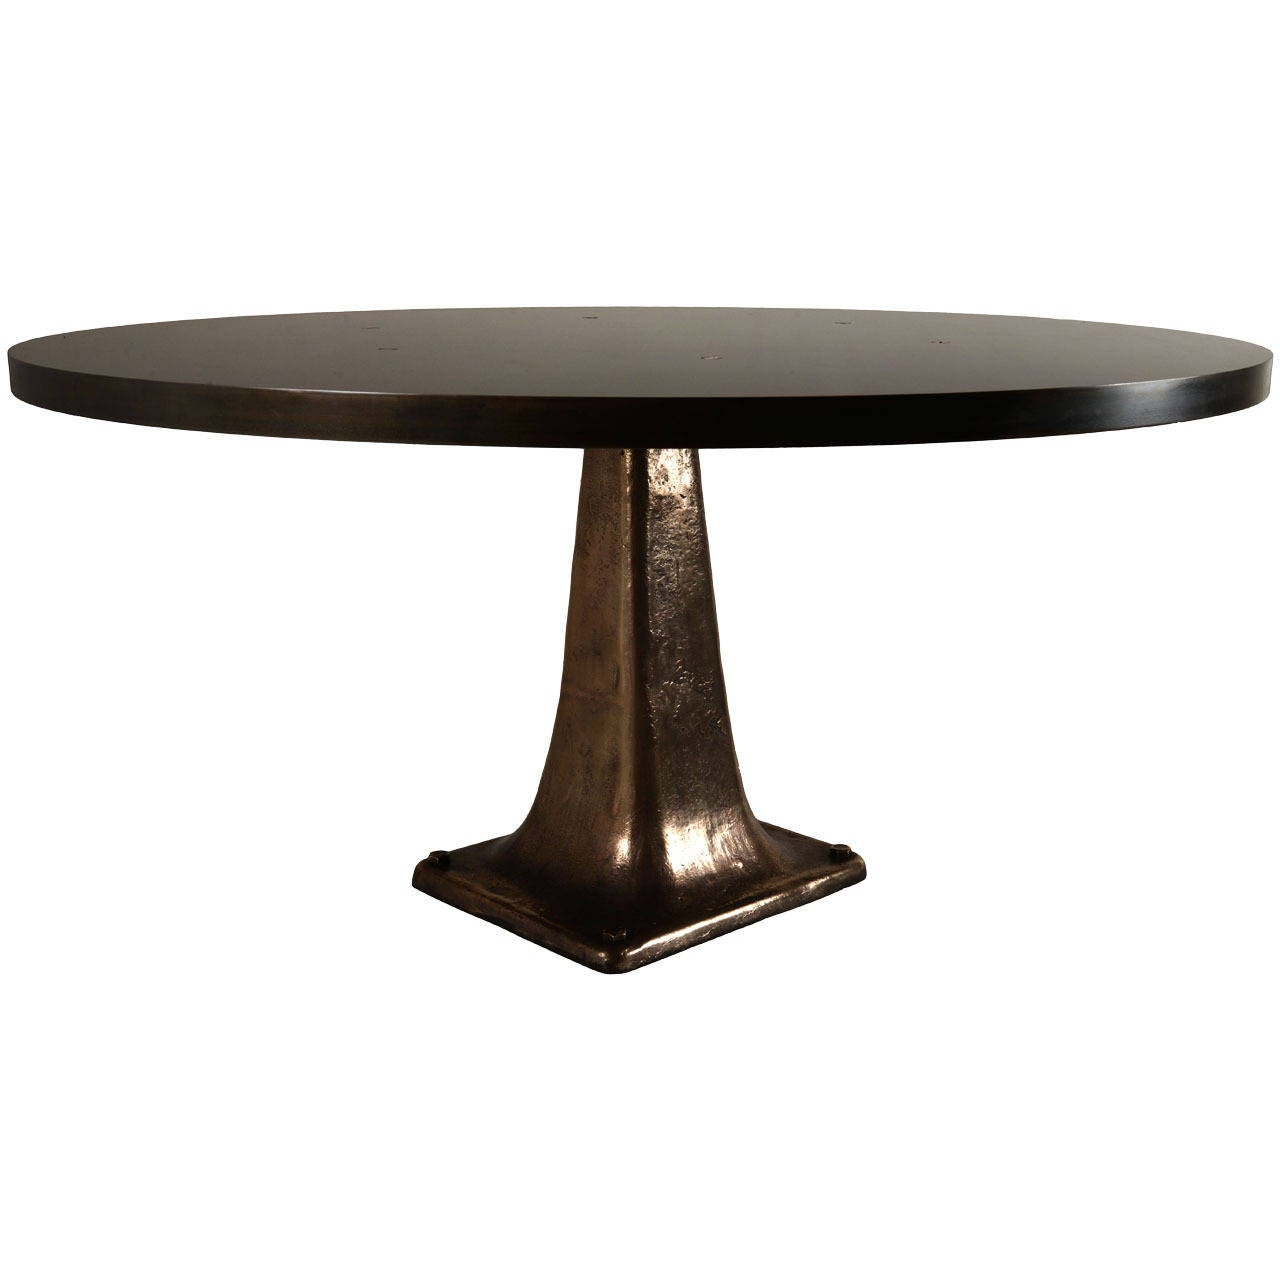 American Made Pedestal Dining Tables Images Early